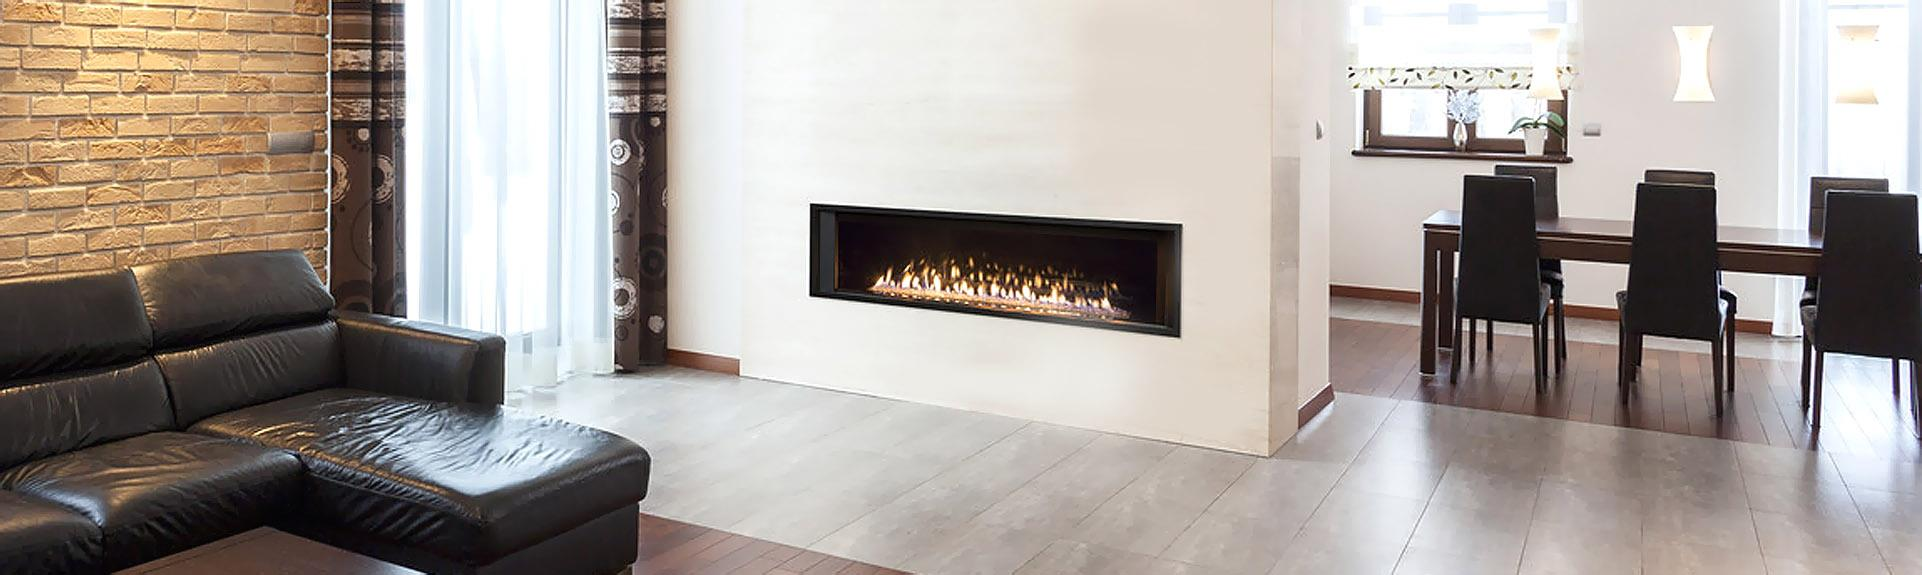 heat u0026 glo fireplace inserts monmouth county wood stove